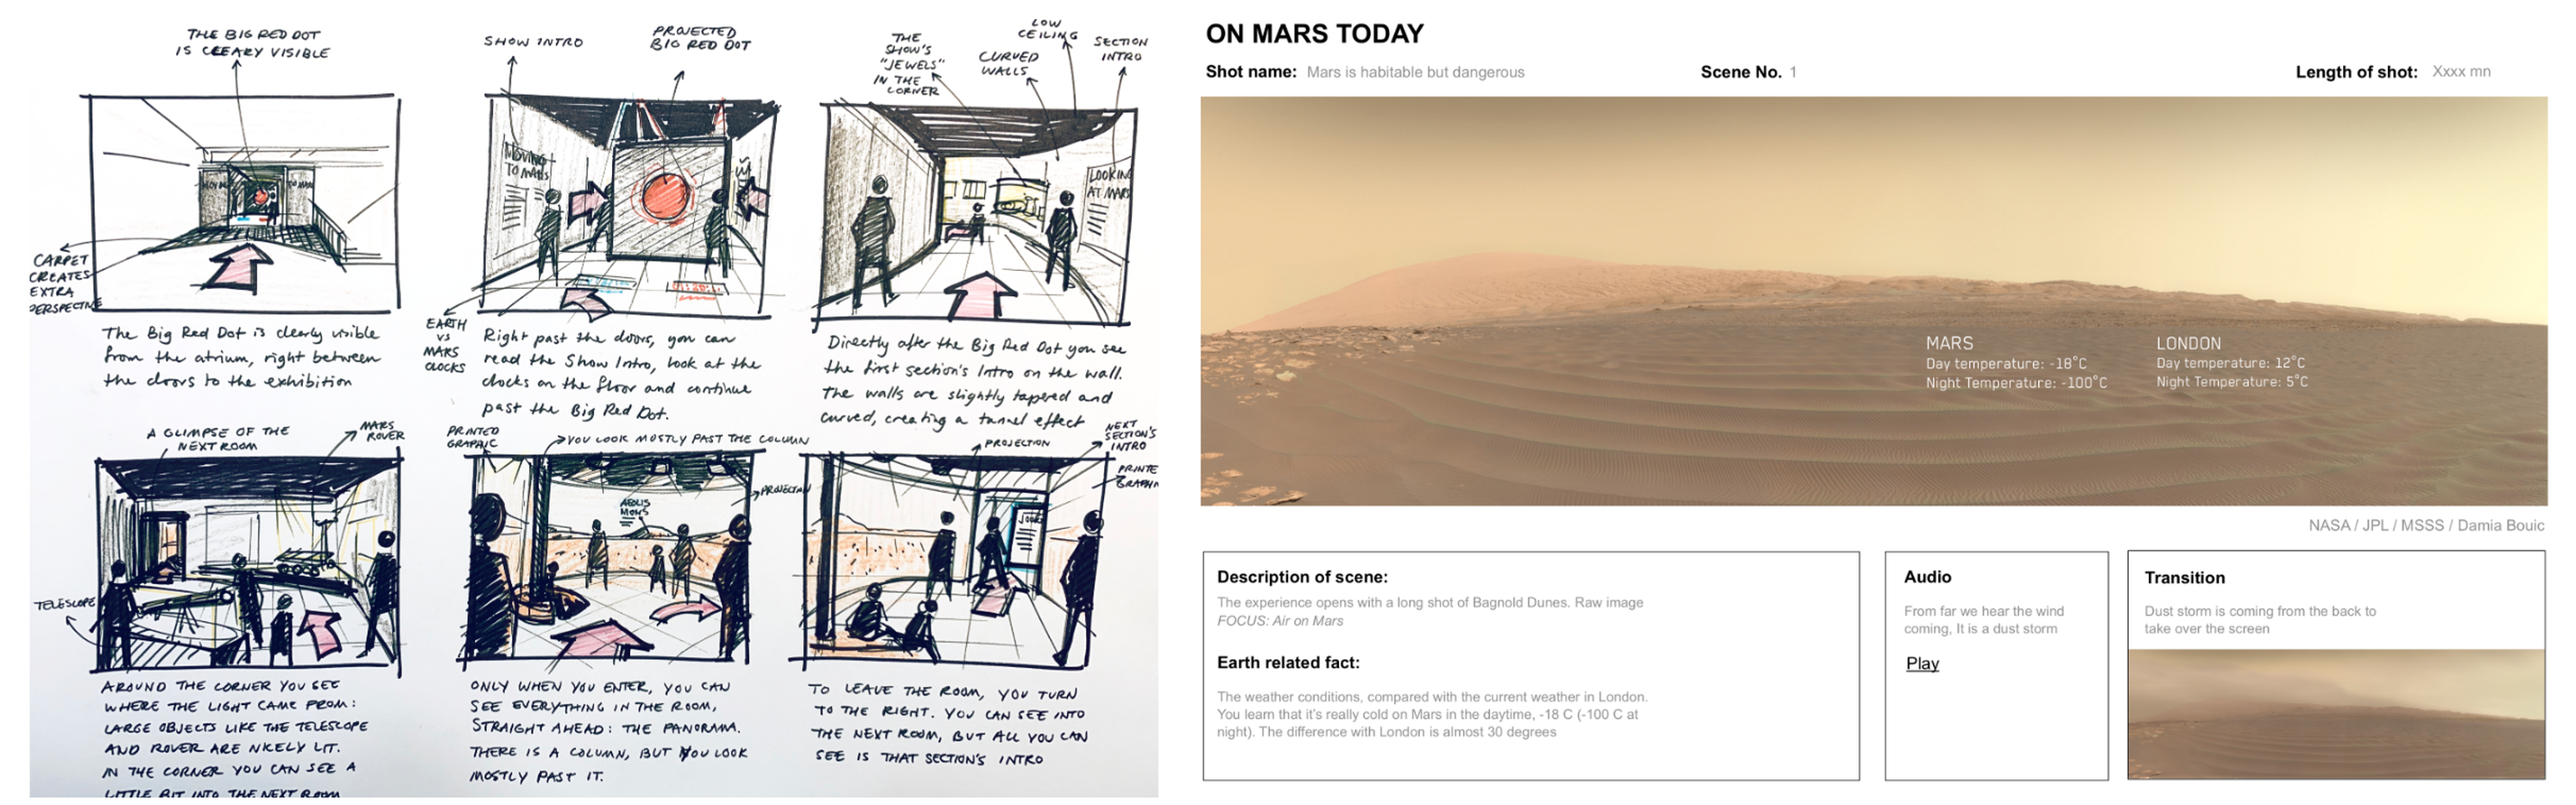 Storyboards Mars expedition